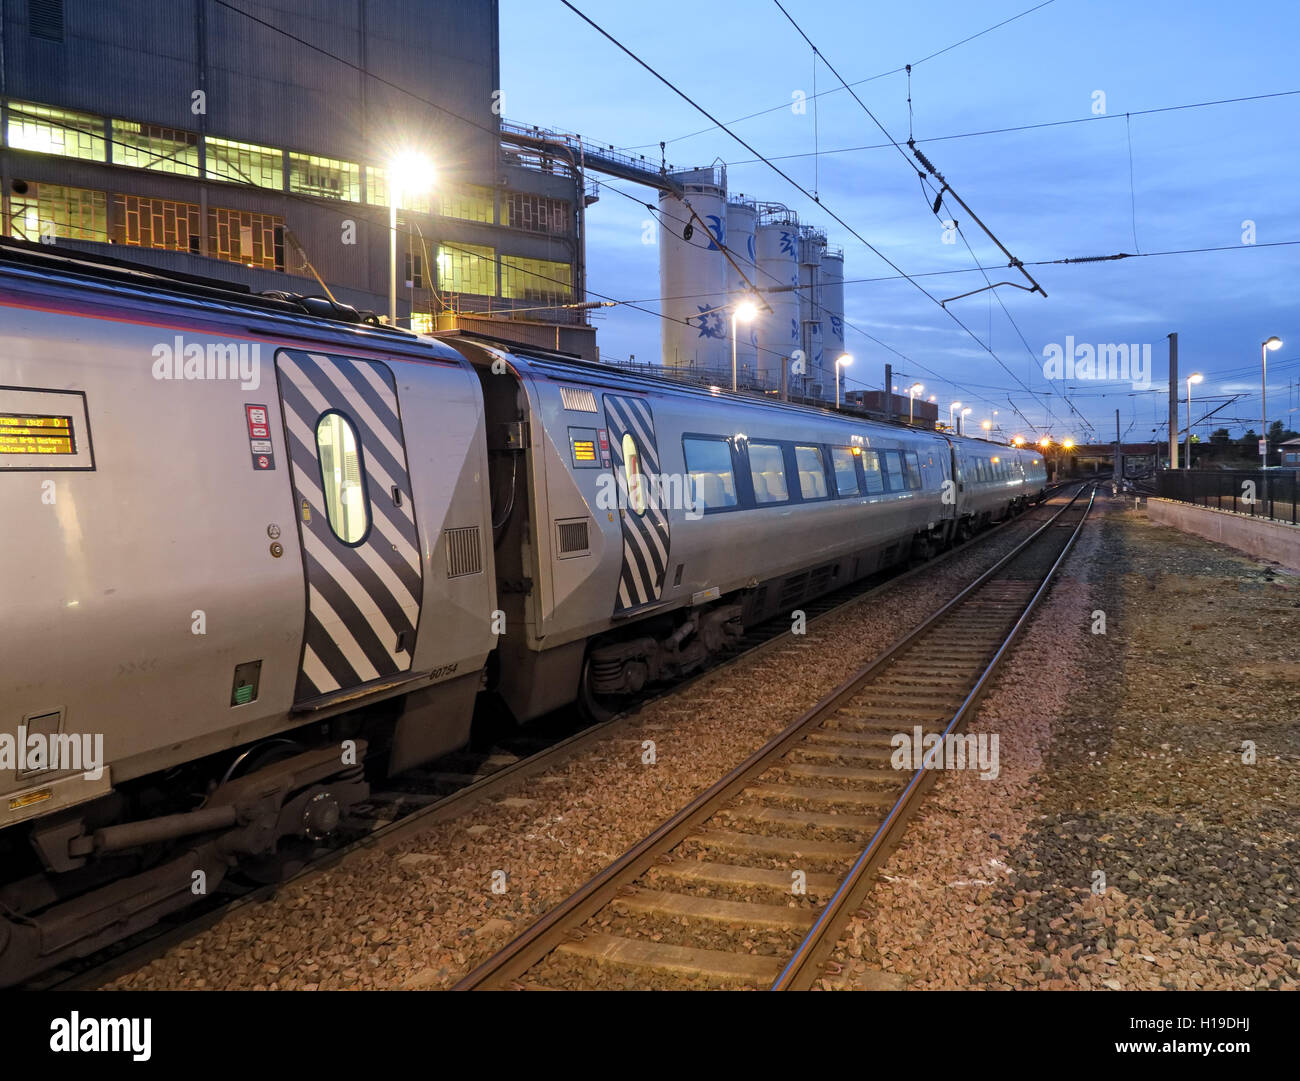 West,coast,main,line,mainline,BR,privitised,rail,rails,track,tracks,Northbound,dusk,at,night,evening,franchise,lighting,Lever,plant,factory,WBQ,profit,profits,expensive,increase,overhead,cable,cables,problem,delay,delays,Virgin Pendolino,electric train,Warrington Bank Quay,railway station,GoTonySmith,@HotpixUK,Tony,Smith,UK,GB,Great,Britain,United,Kingdom,English,British,England,delay,delays,delayed.late,later,Buy Pictures of,Buy Images Of,Images of,Stock Images,Tony Smith,United Kingdom,Great Britain,British Isles